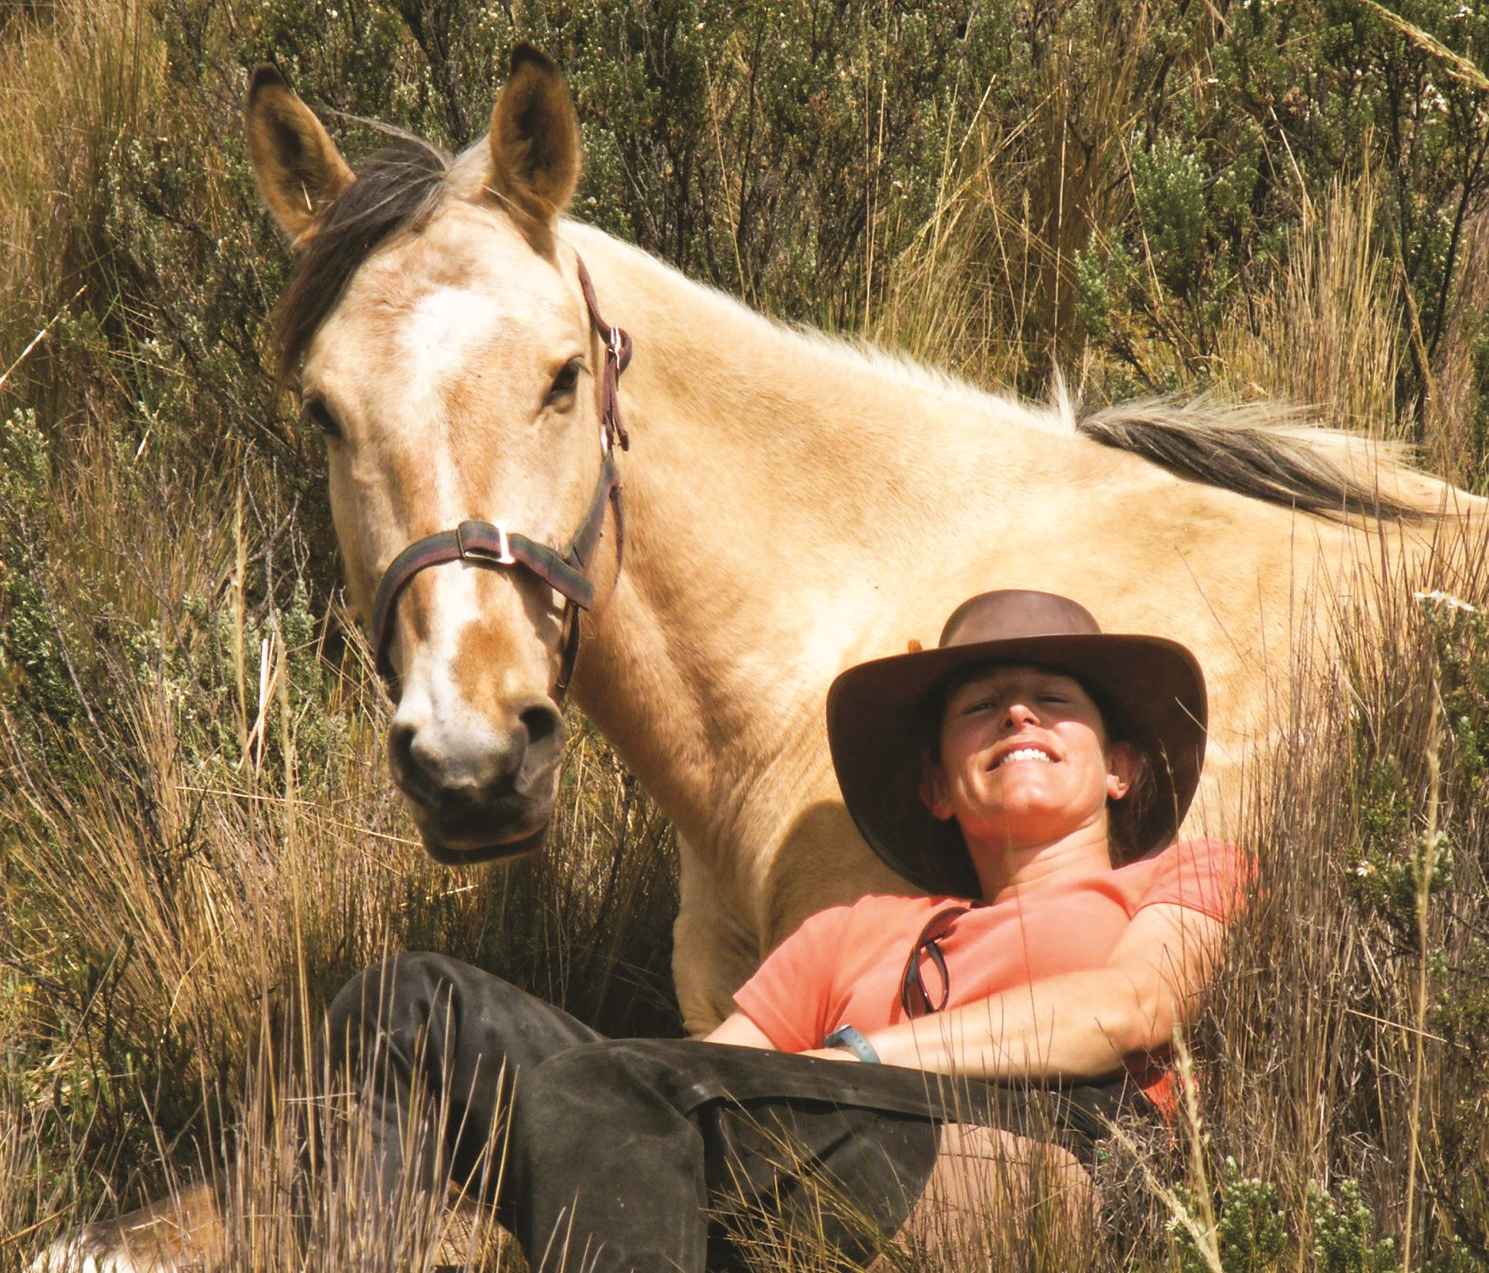 Sally - started her horse trekking business in 1996, after visiting Ecuador and falling in love with the colourful local culture and magnificent scenery. She is passionate about her 13 horses and her rescued border collie, Guapa. Sally guides many of the Ecuador and Uruguay rides. Click photo for more info...